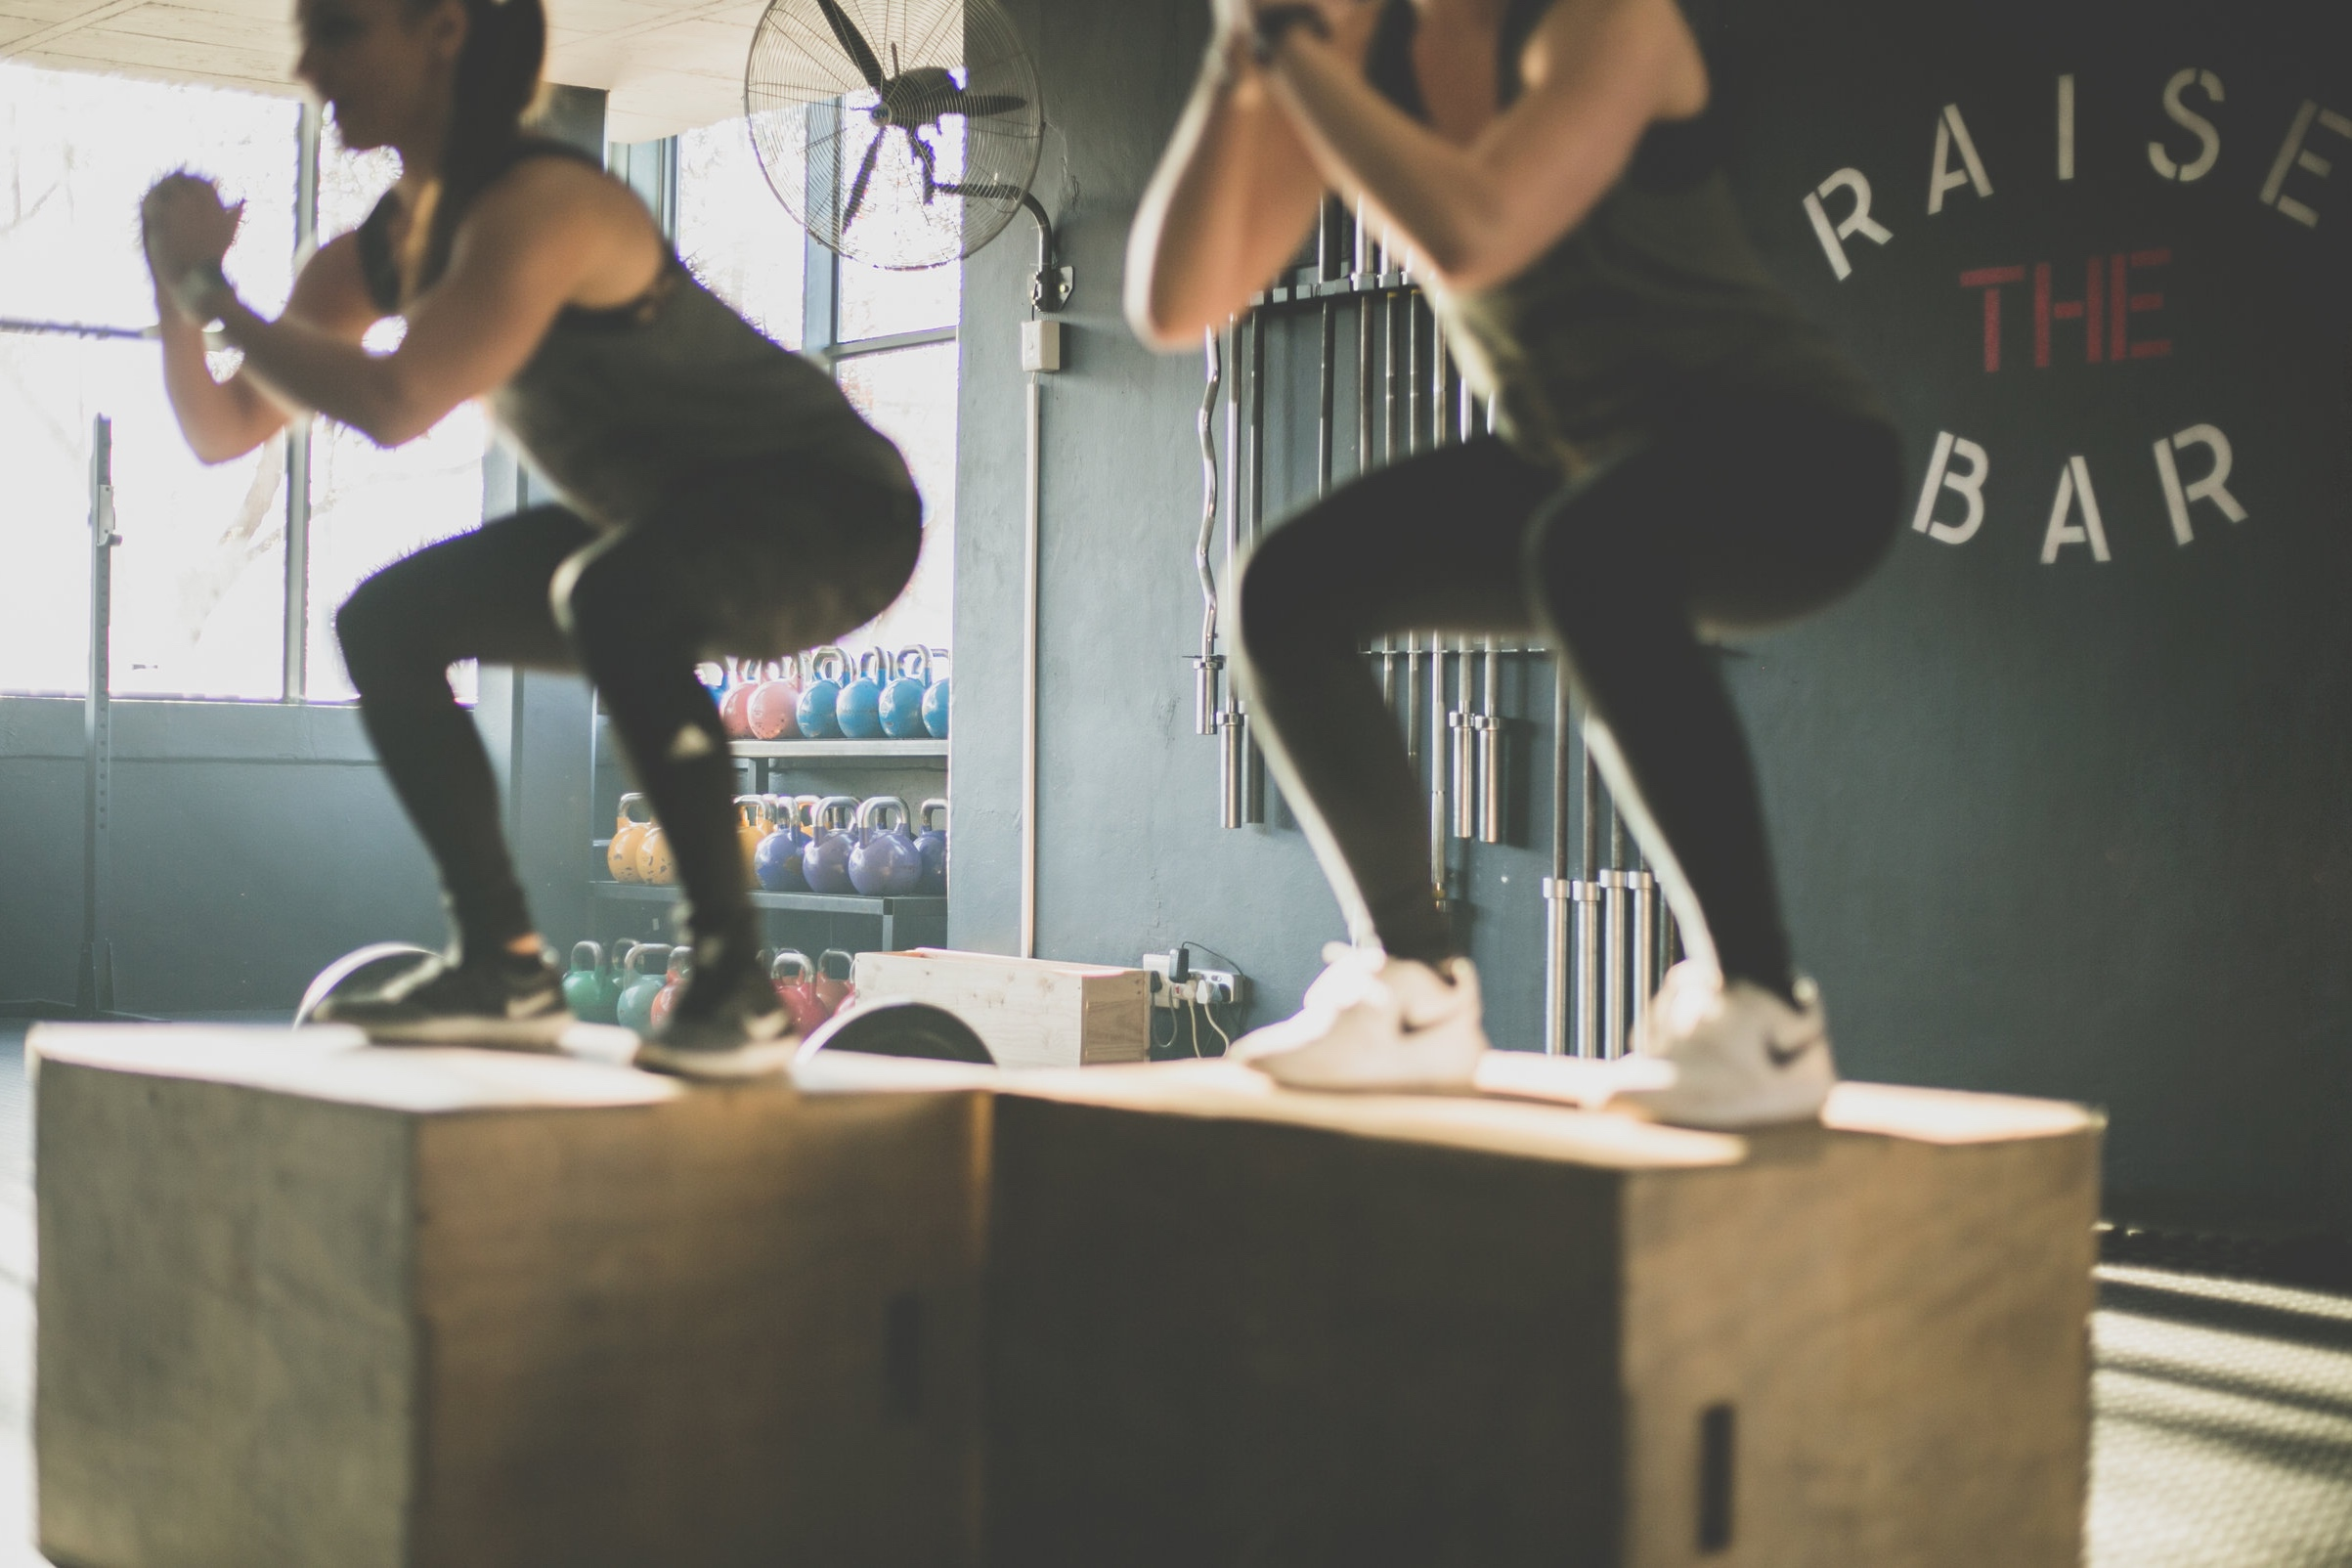 Athletes - From CrossFit to tennis to triathlons, the sport of choice may vary, but the frustration and agony of limited mobility, injury, and pain are the same. As athletes ourselves, we understand and are just as committed to getting you back to your peak performance as soon and as safely as possible.